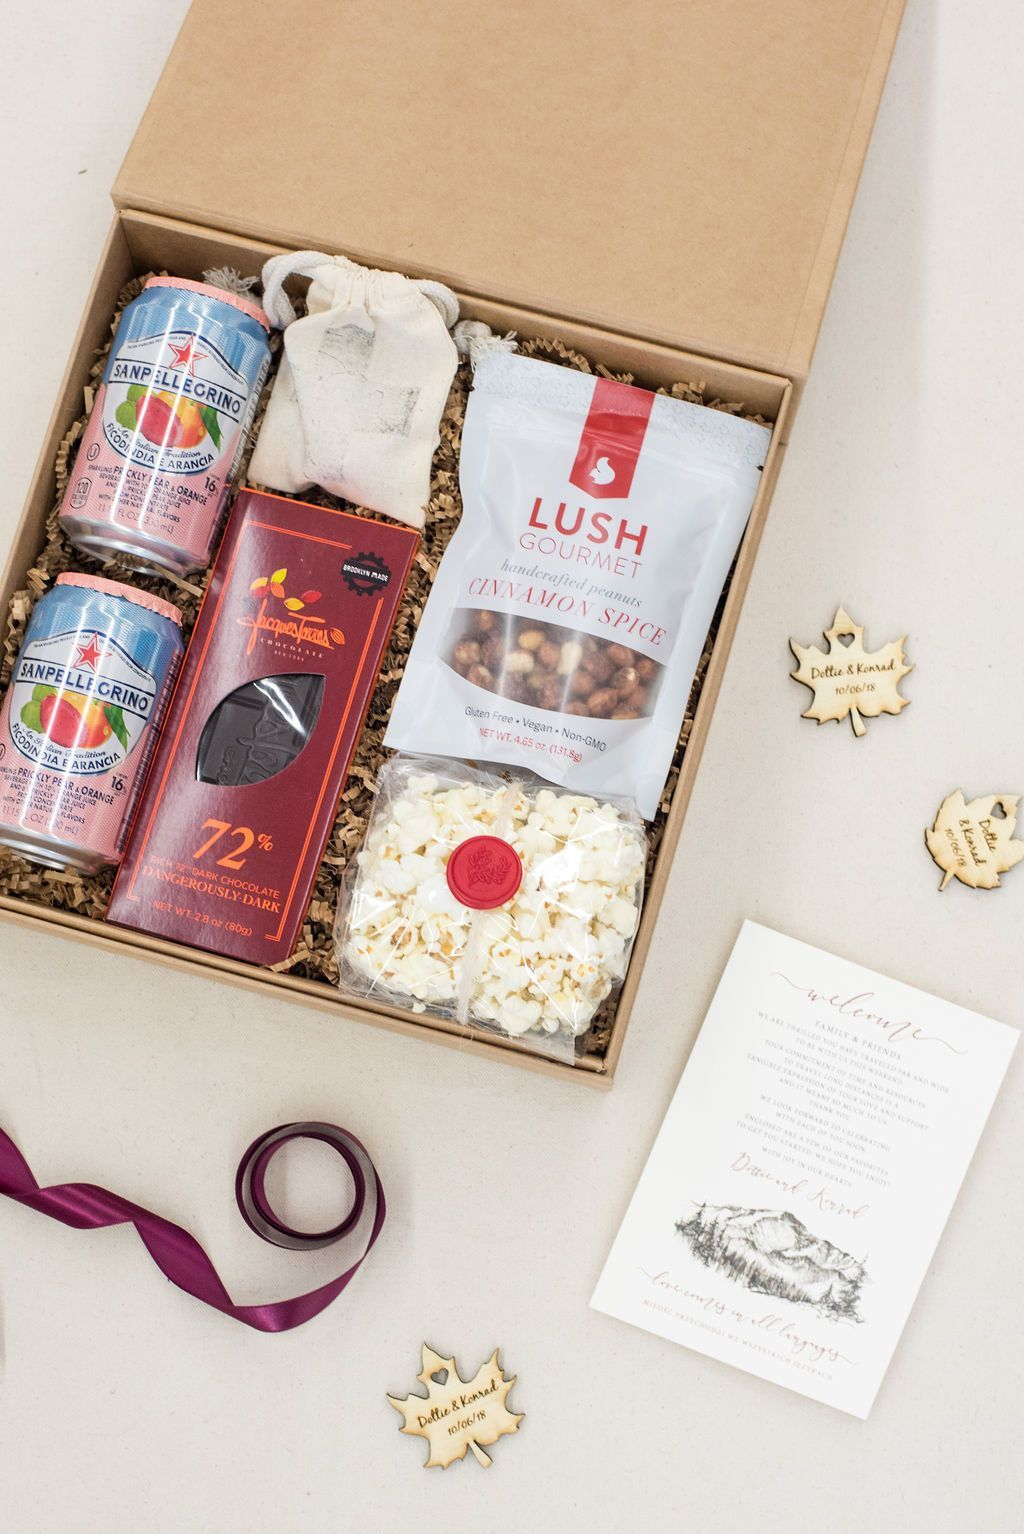 Top Wedding Welcome Gift Box Designs Of 2018 In 2019 Small